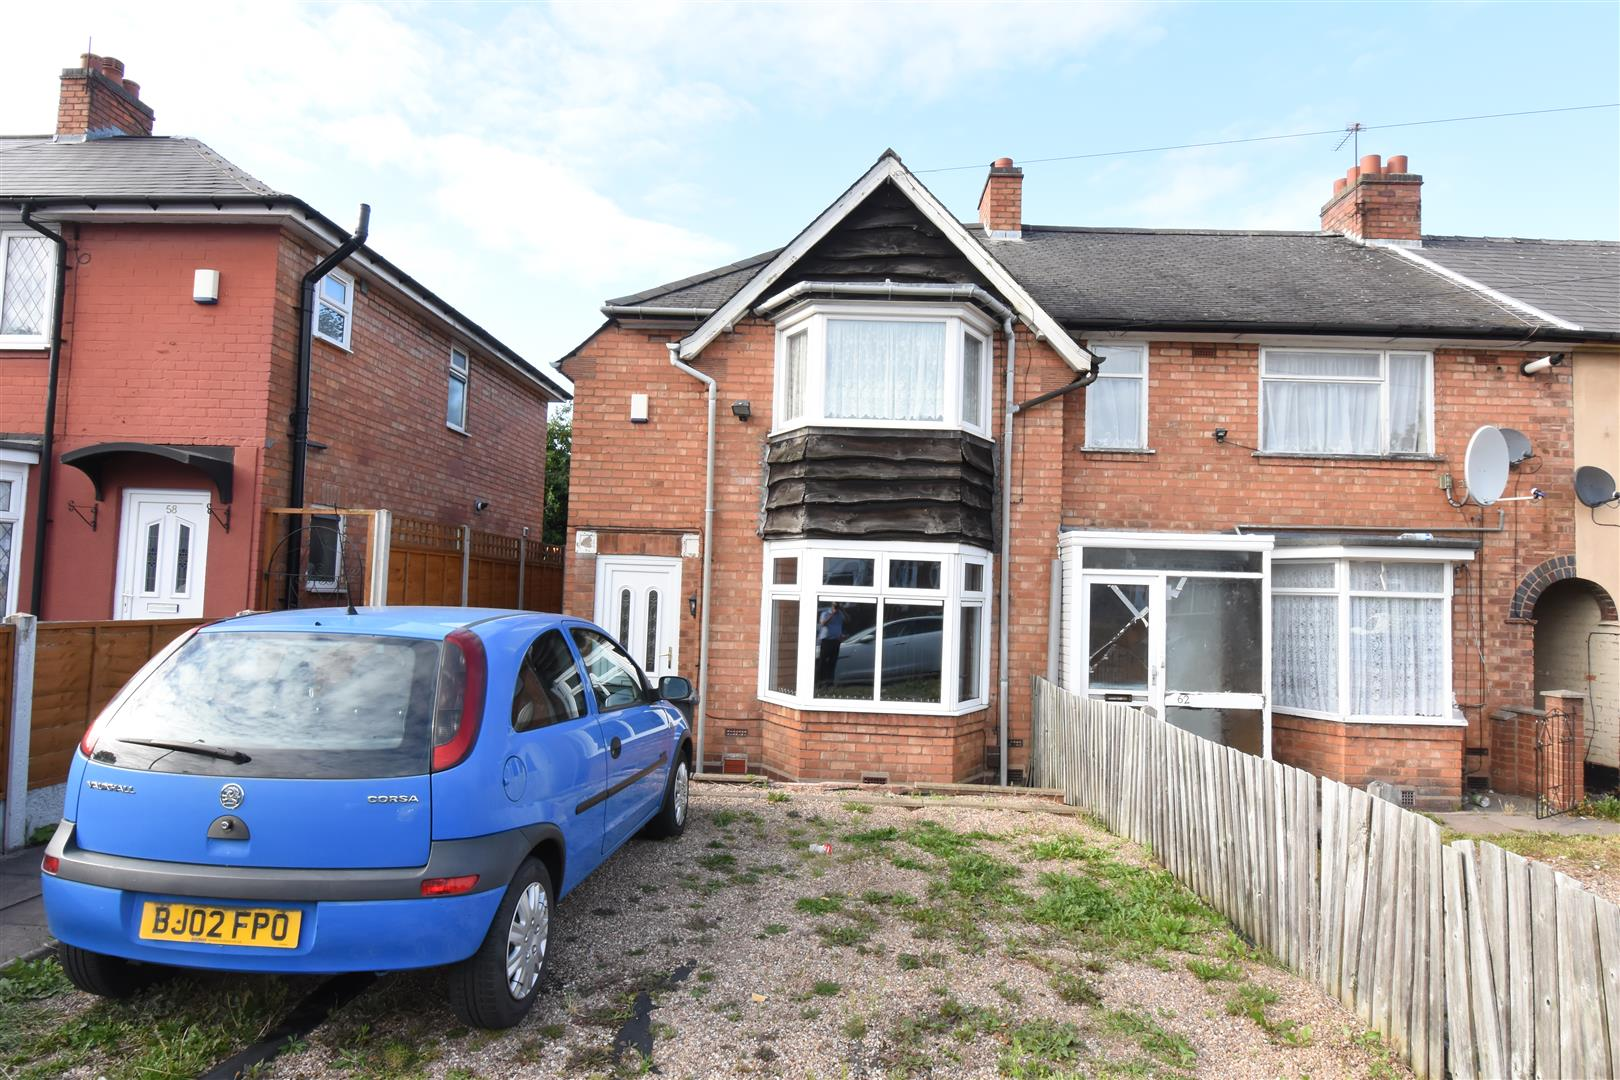 3 bed  for sale in Kenwood Road, Bordesley Green, Birmingham - Property Image 1